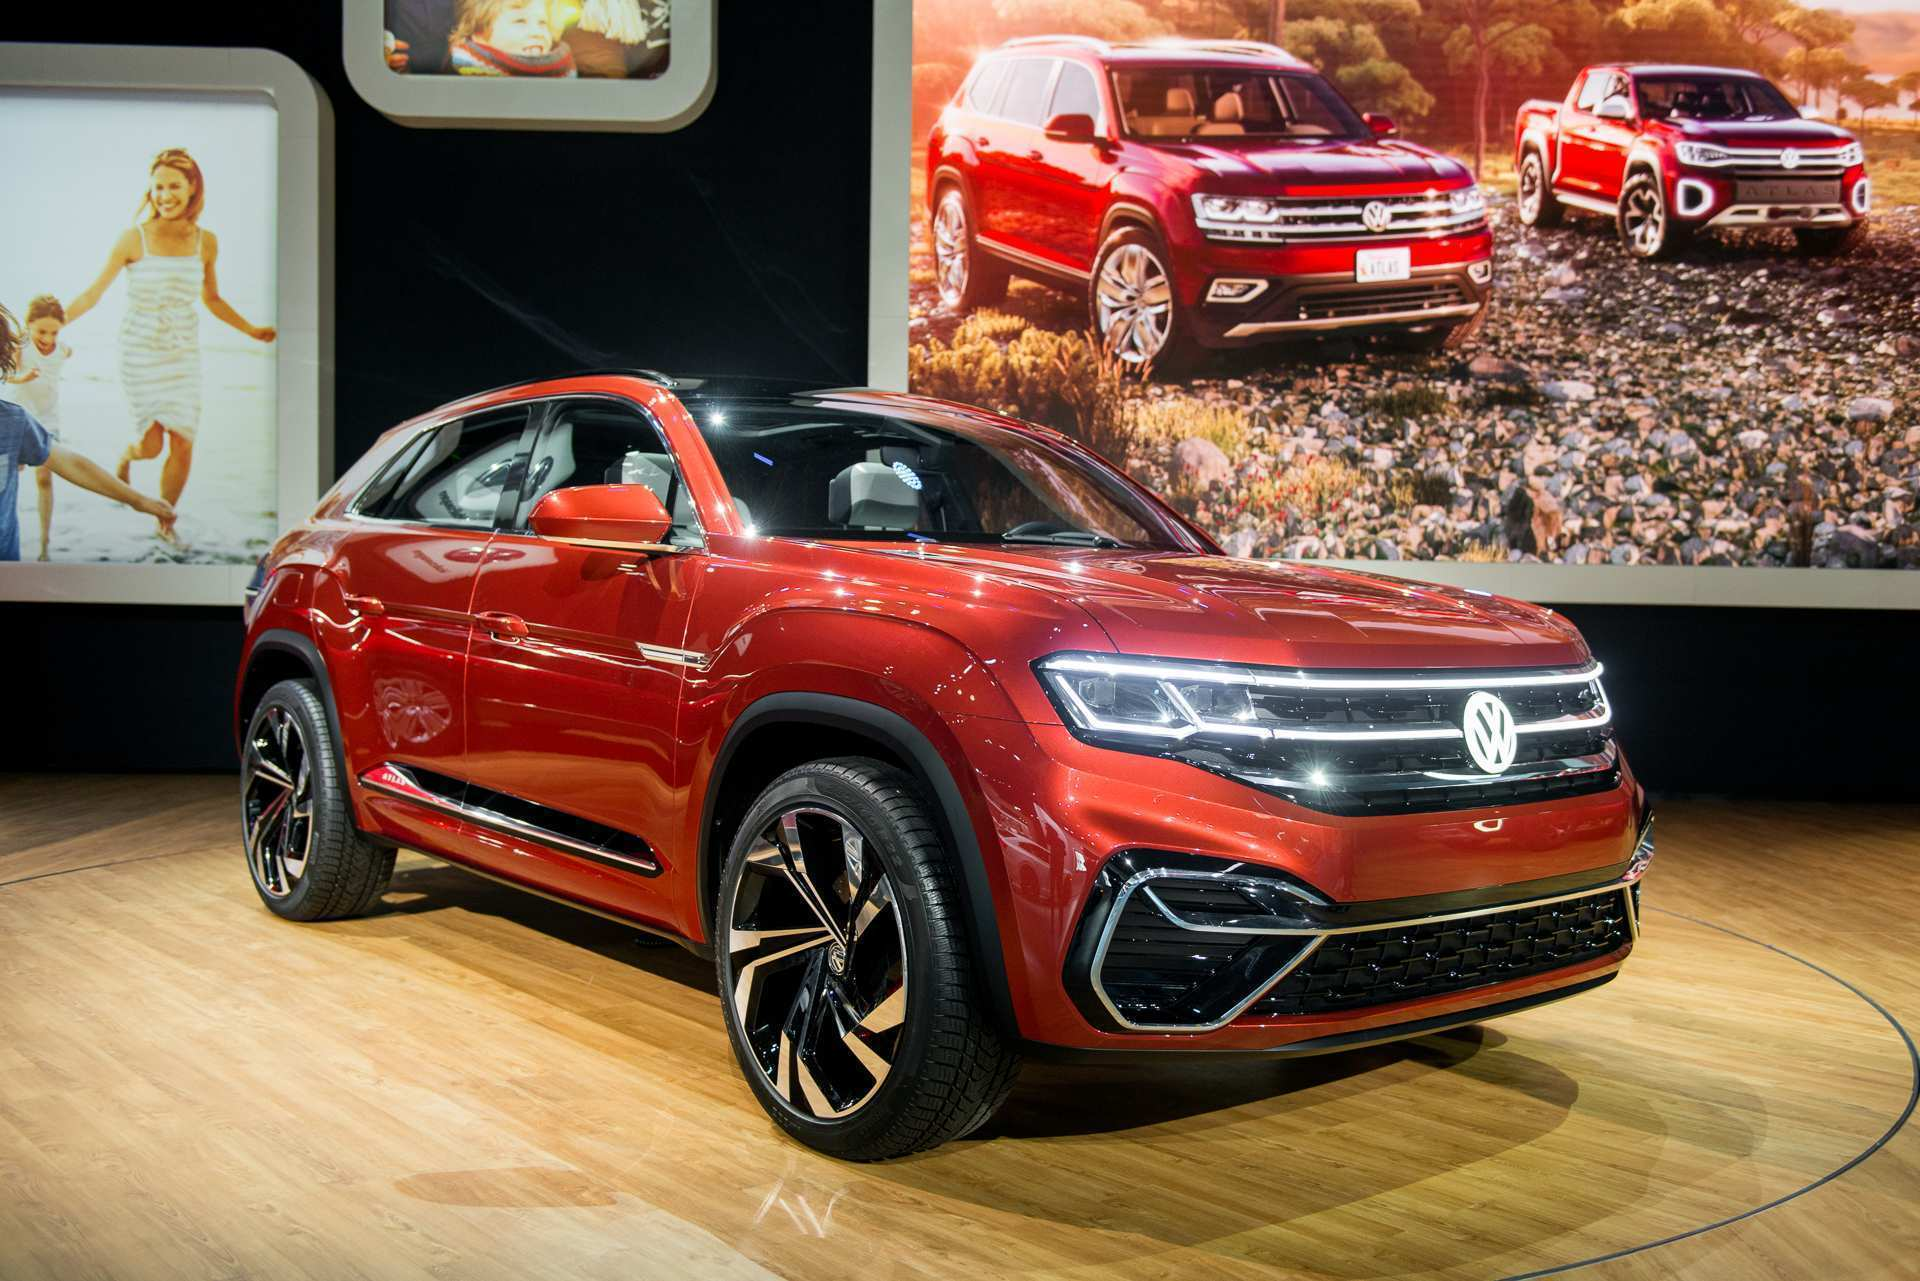 93 Concept of 2020 Volkswagen Cross Rumors by 2020 Volkswagen Cross